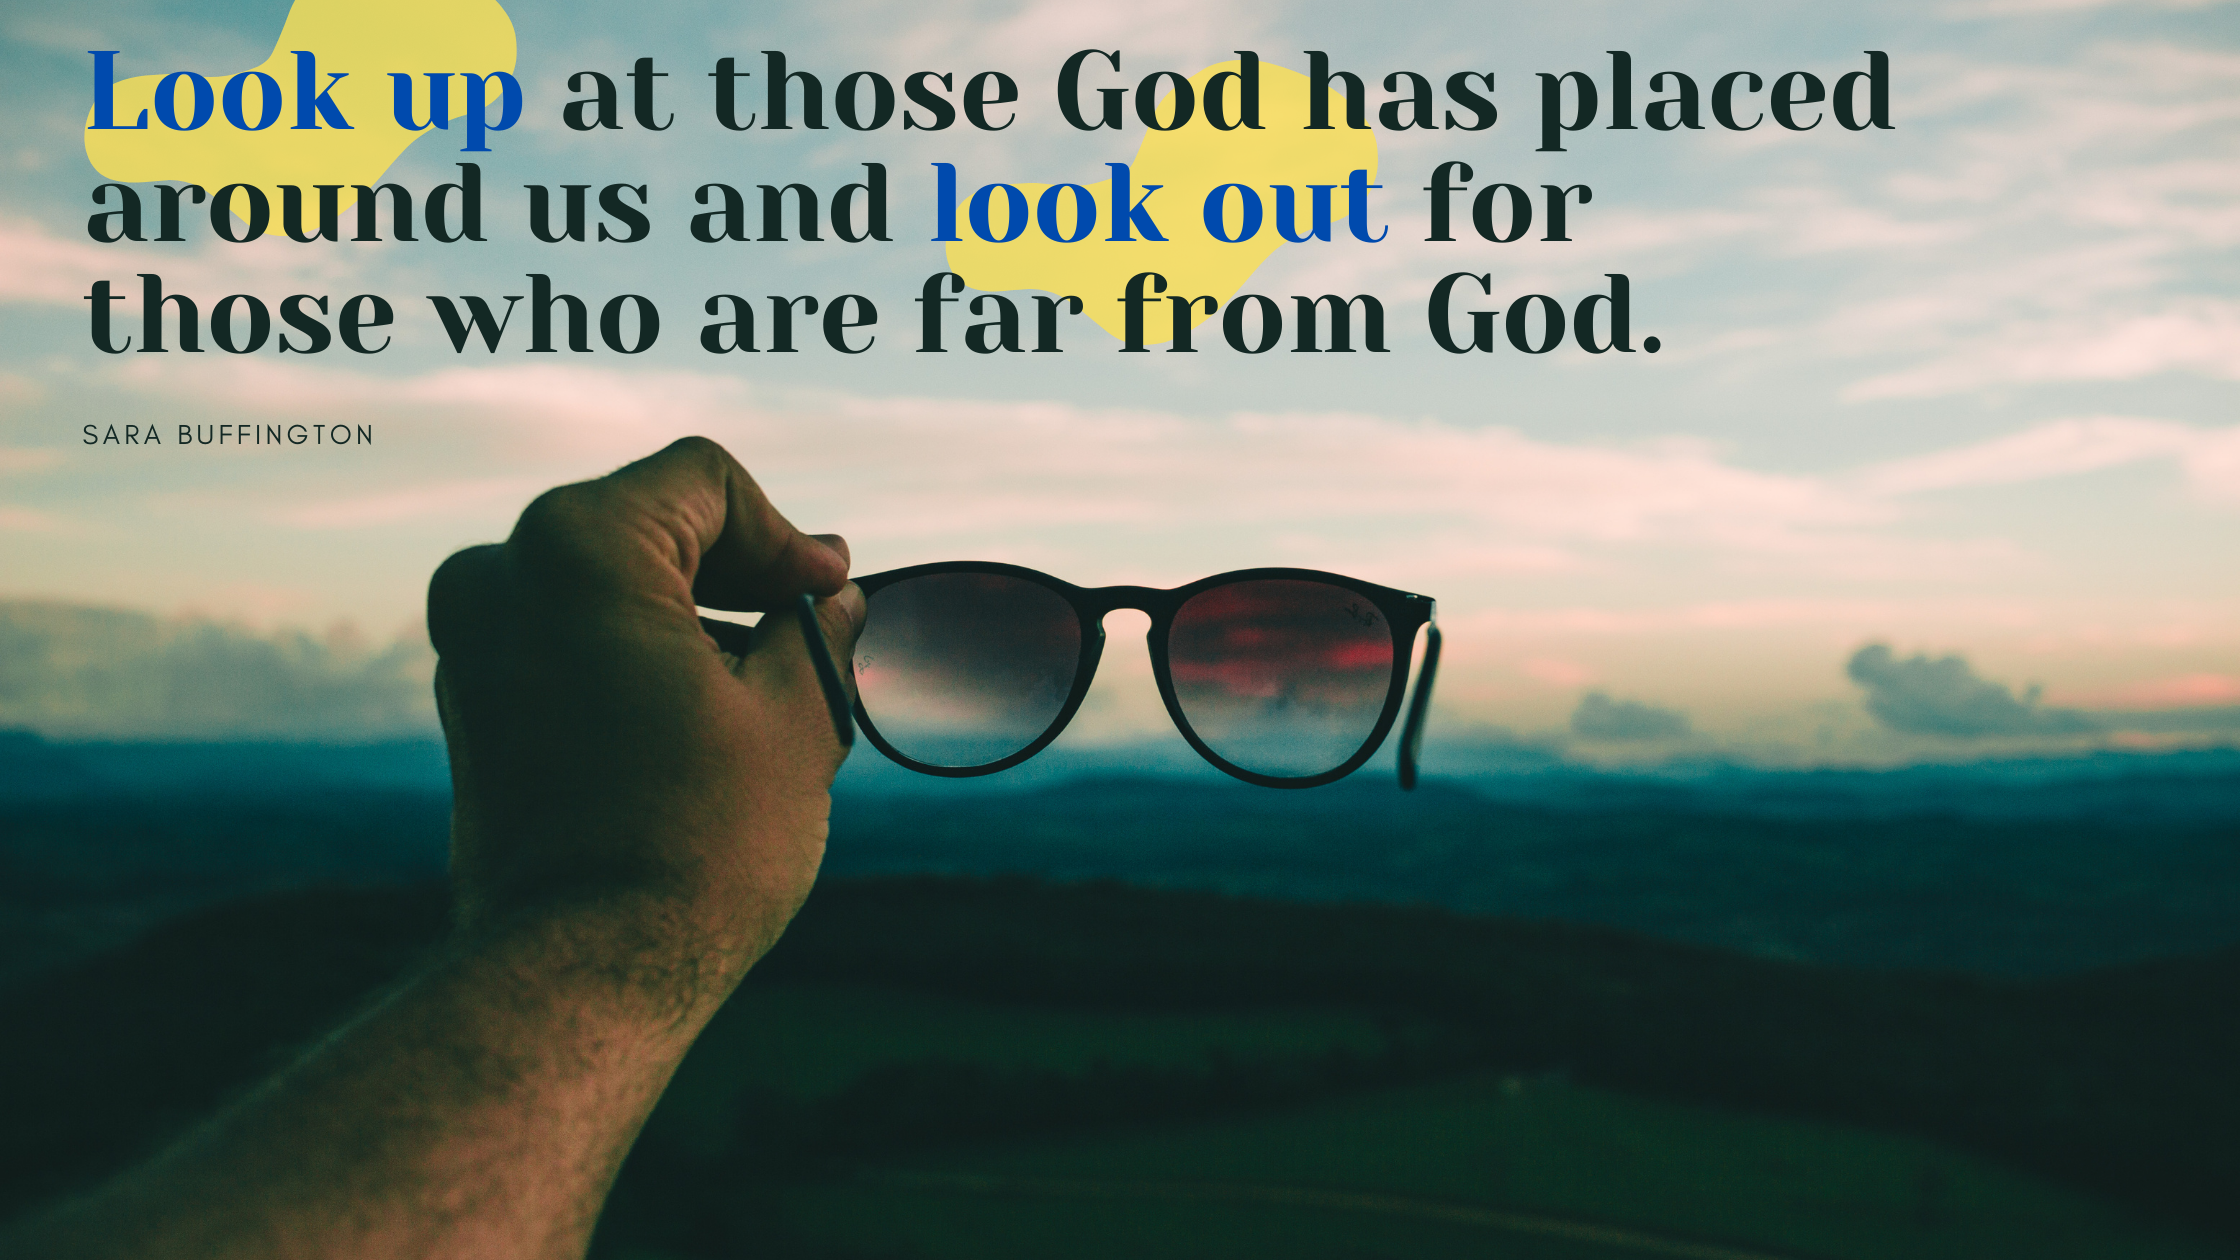 look up at those God has placed around us and to look out for those who are far from God.